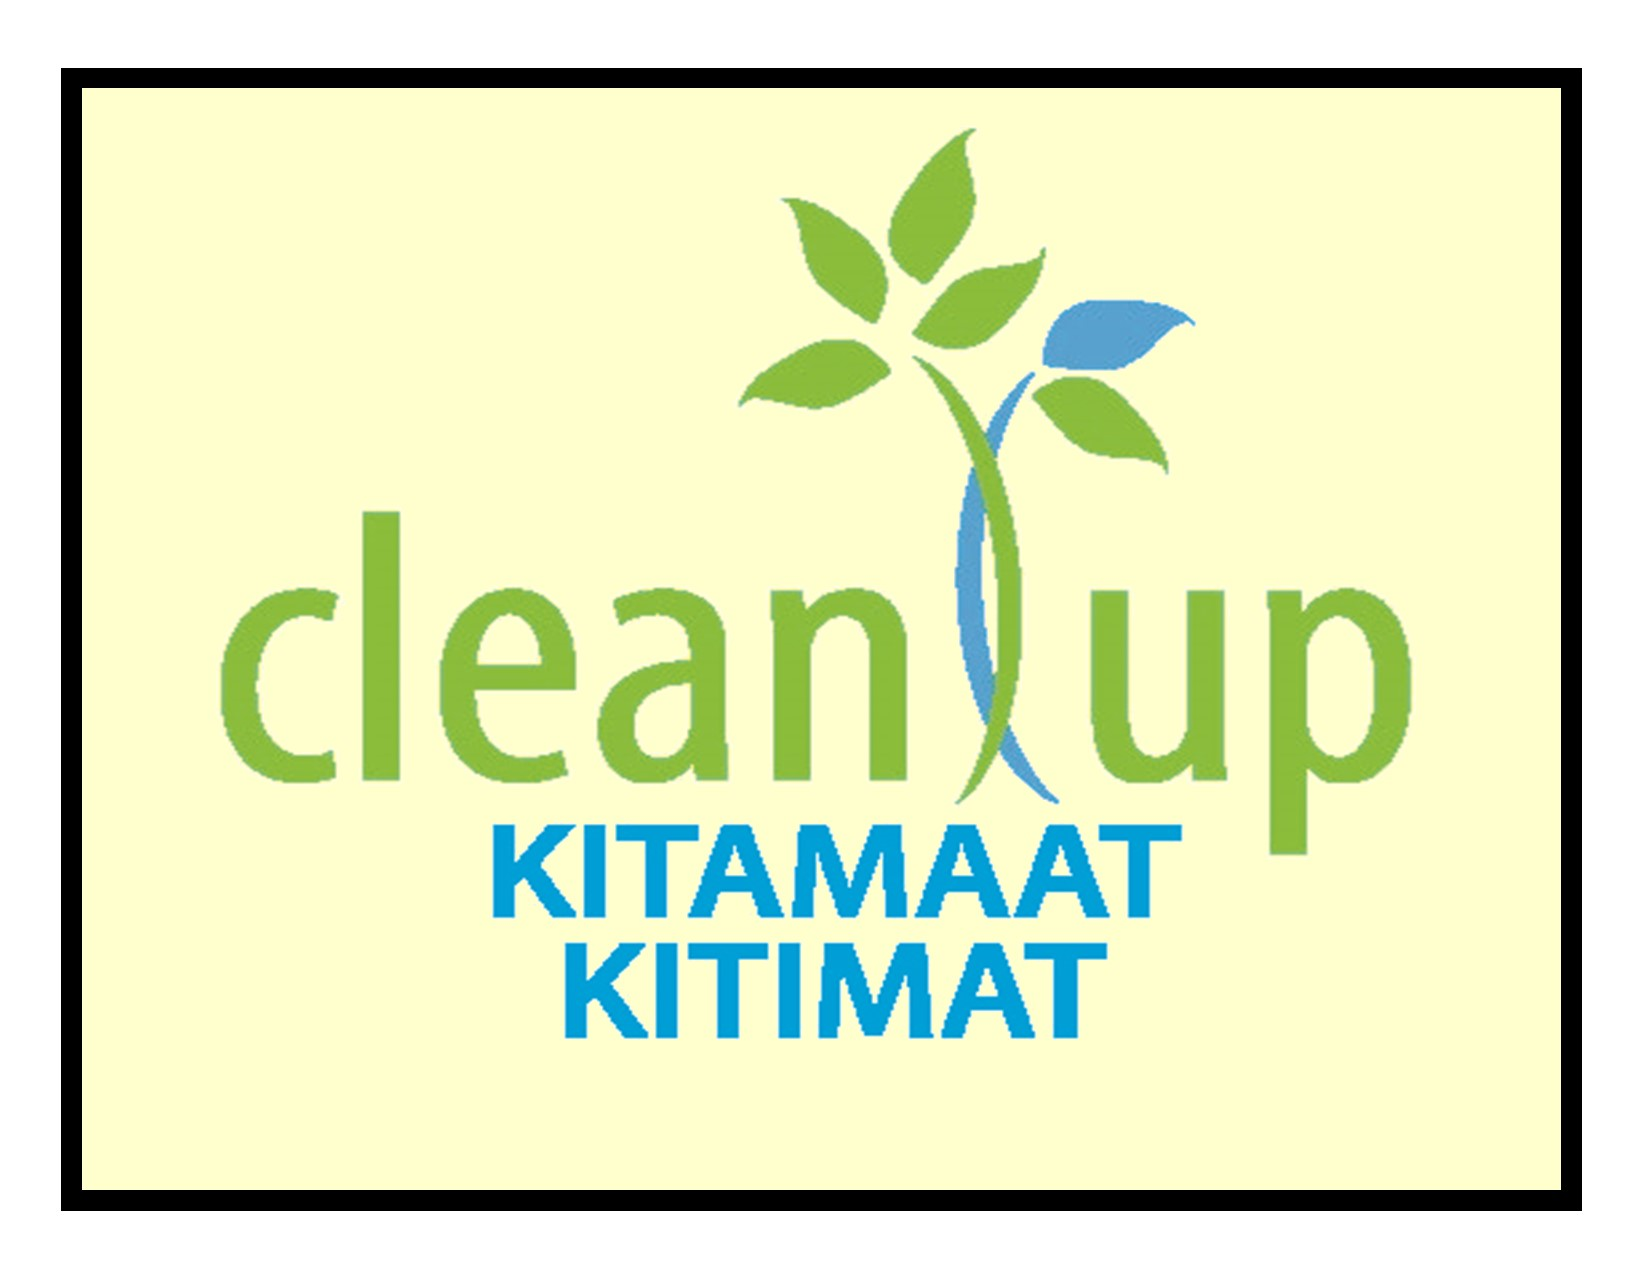 Annual Clean Up Campaigns